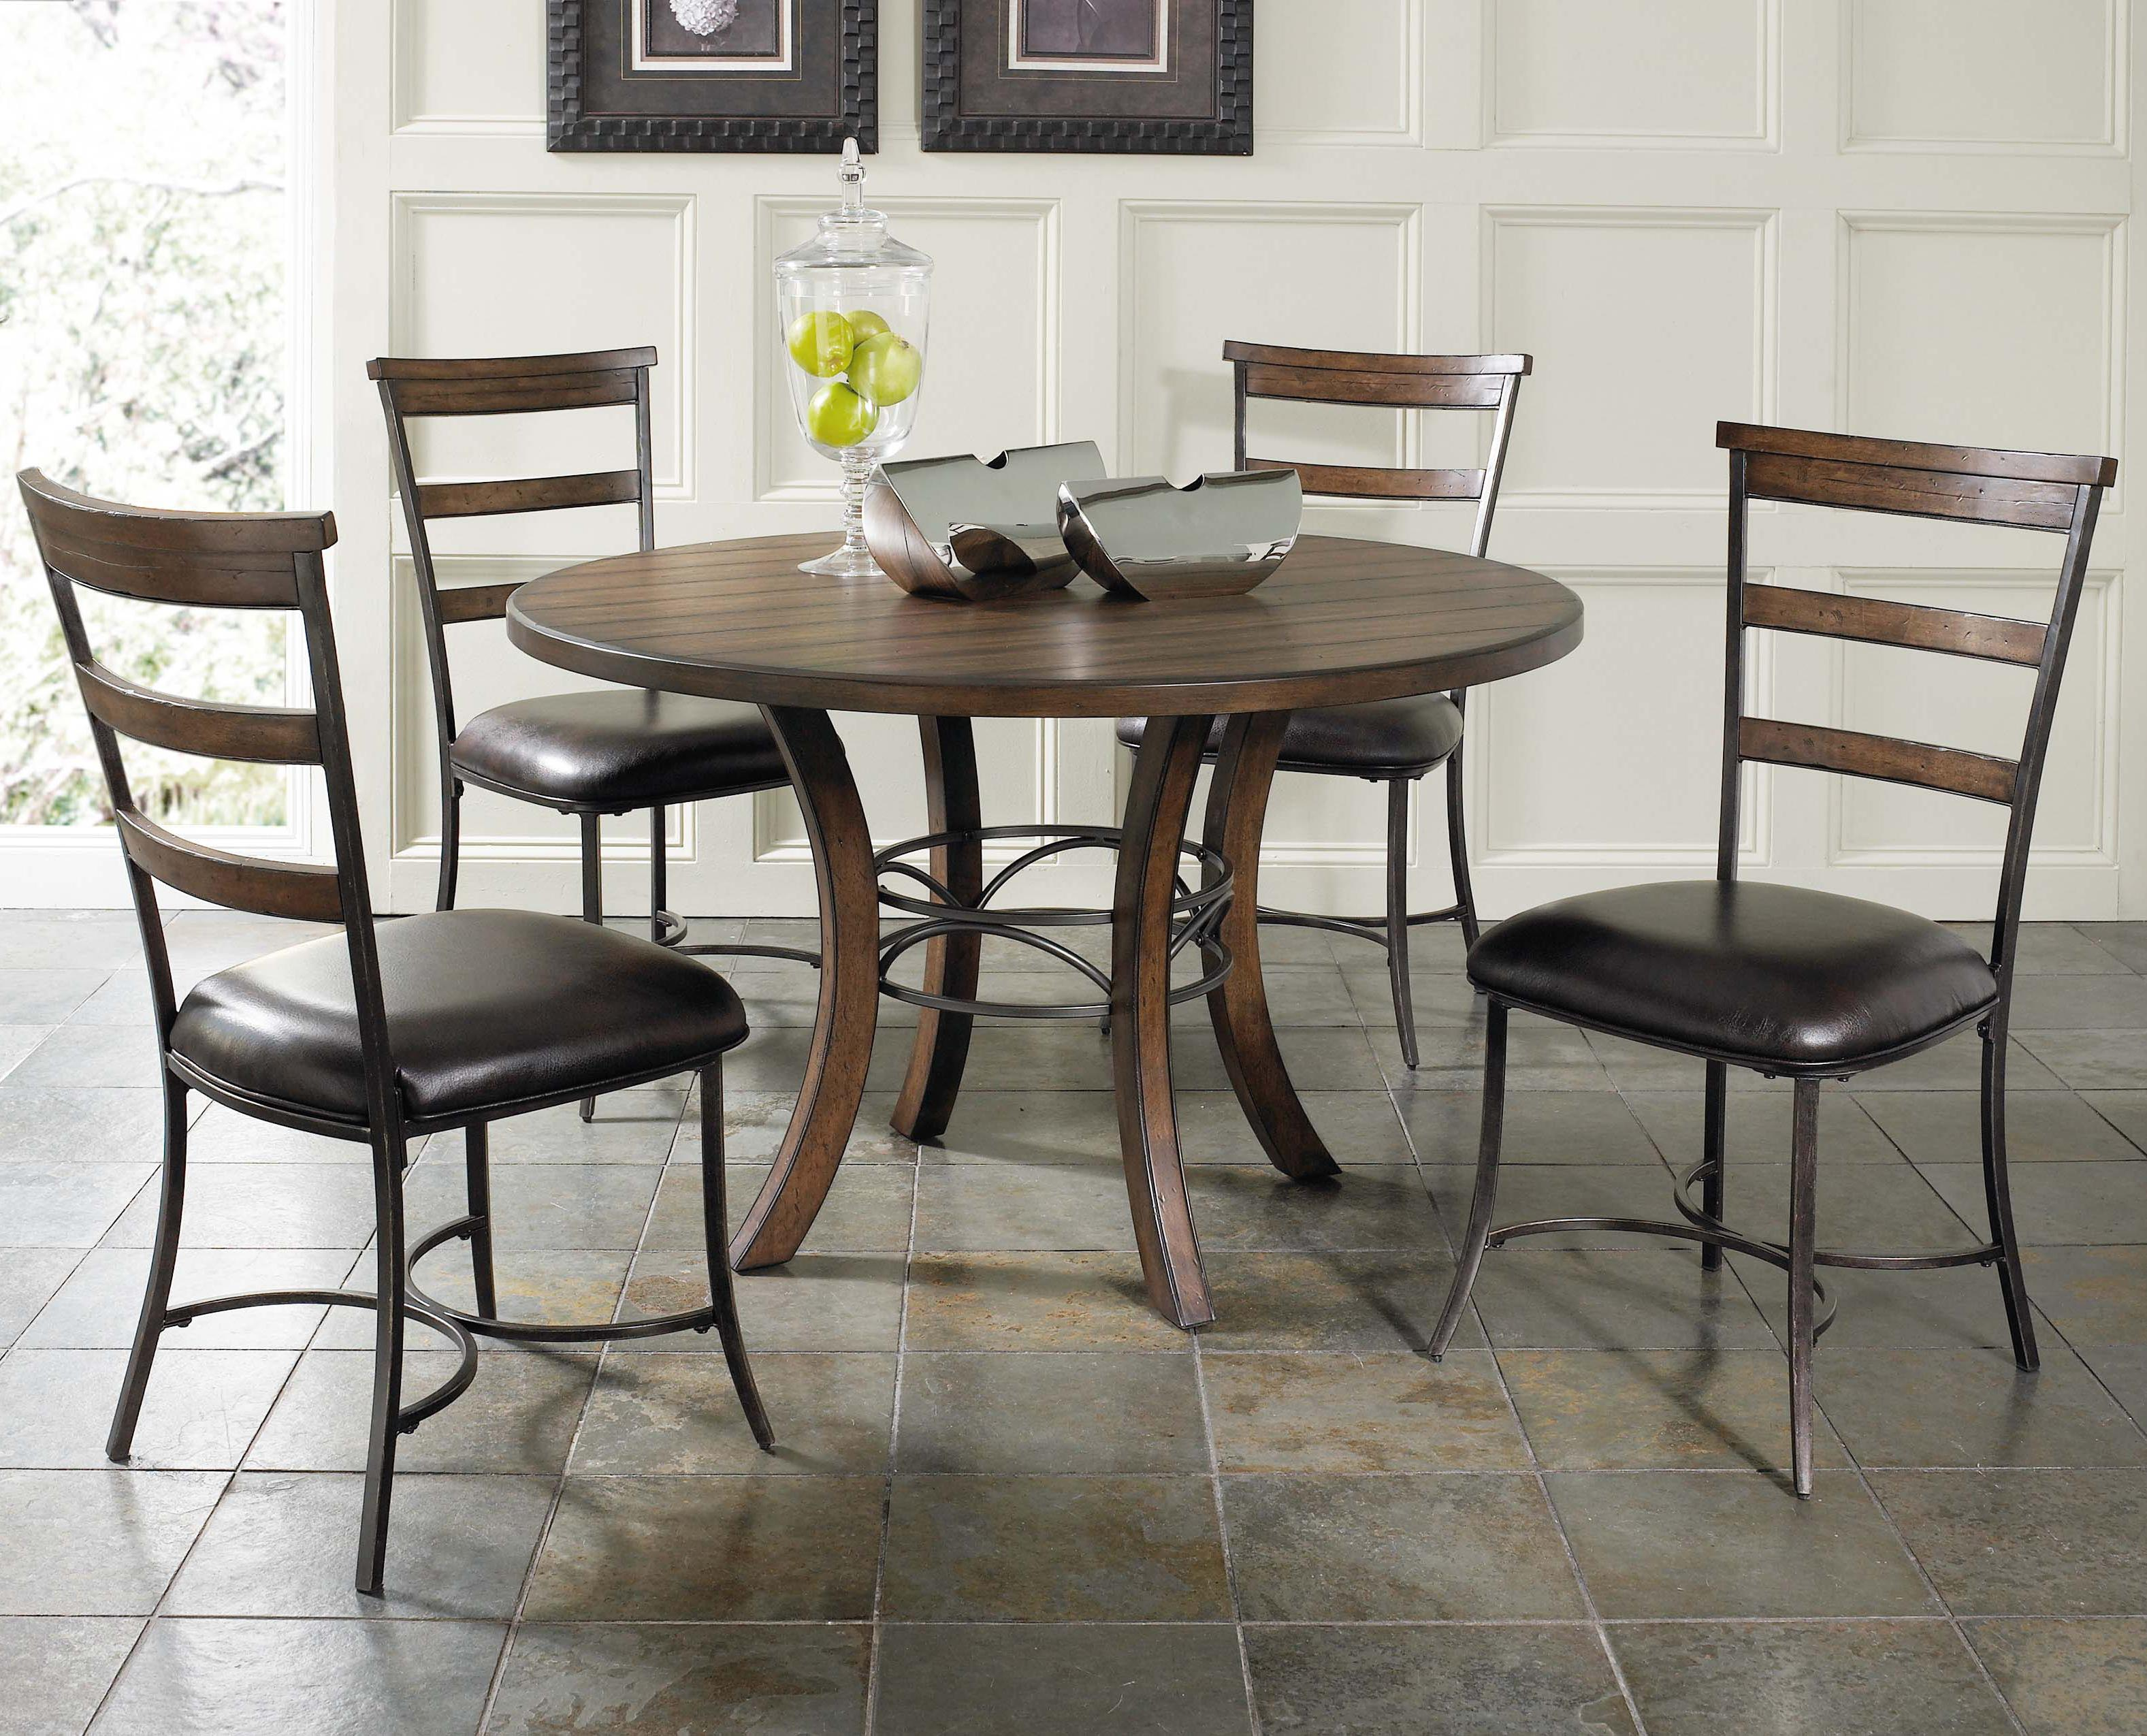 Wood And Metal Round Dining Table Part - 40: Round Dining Table